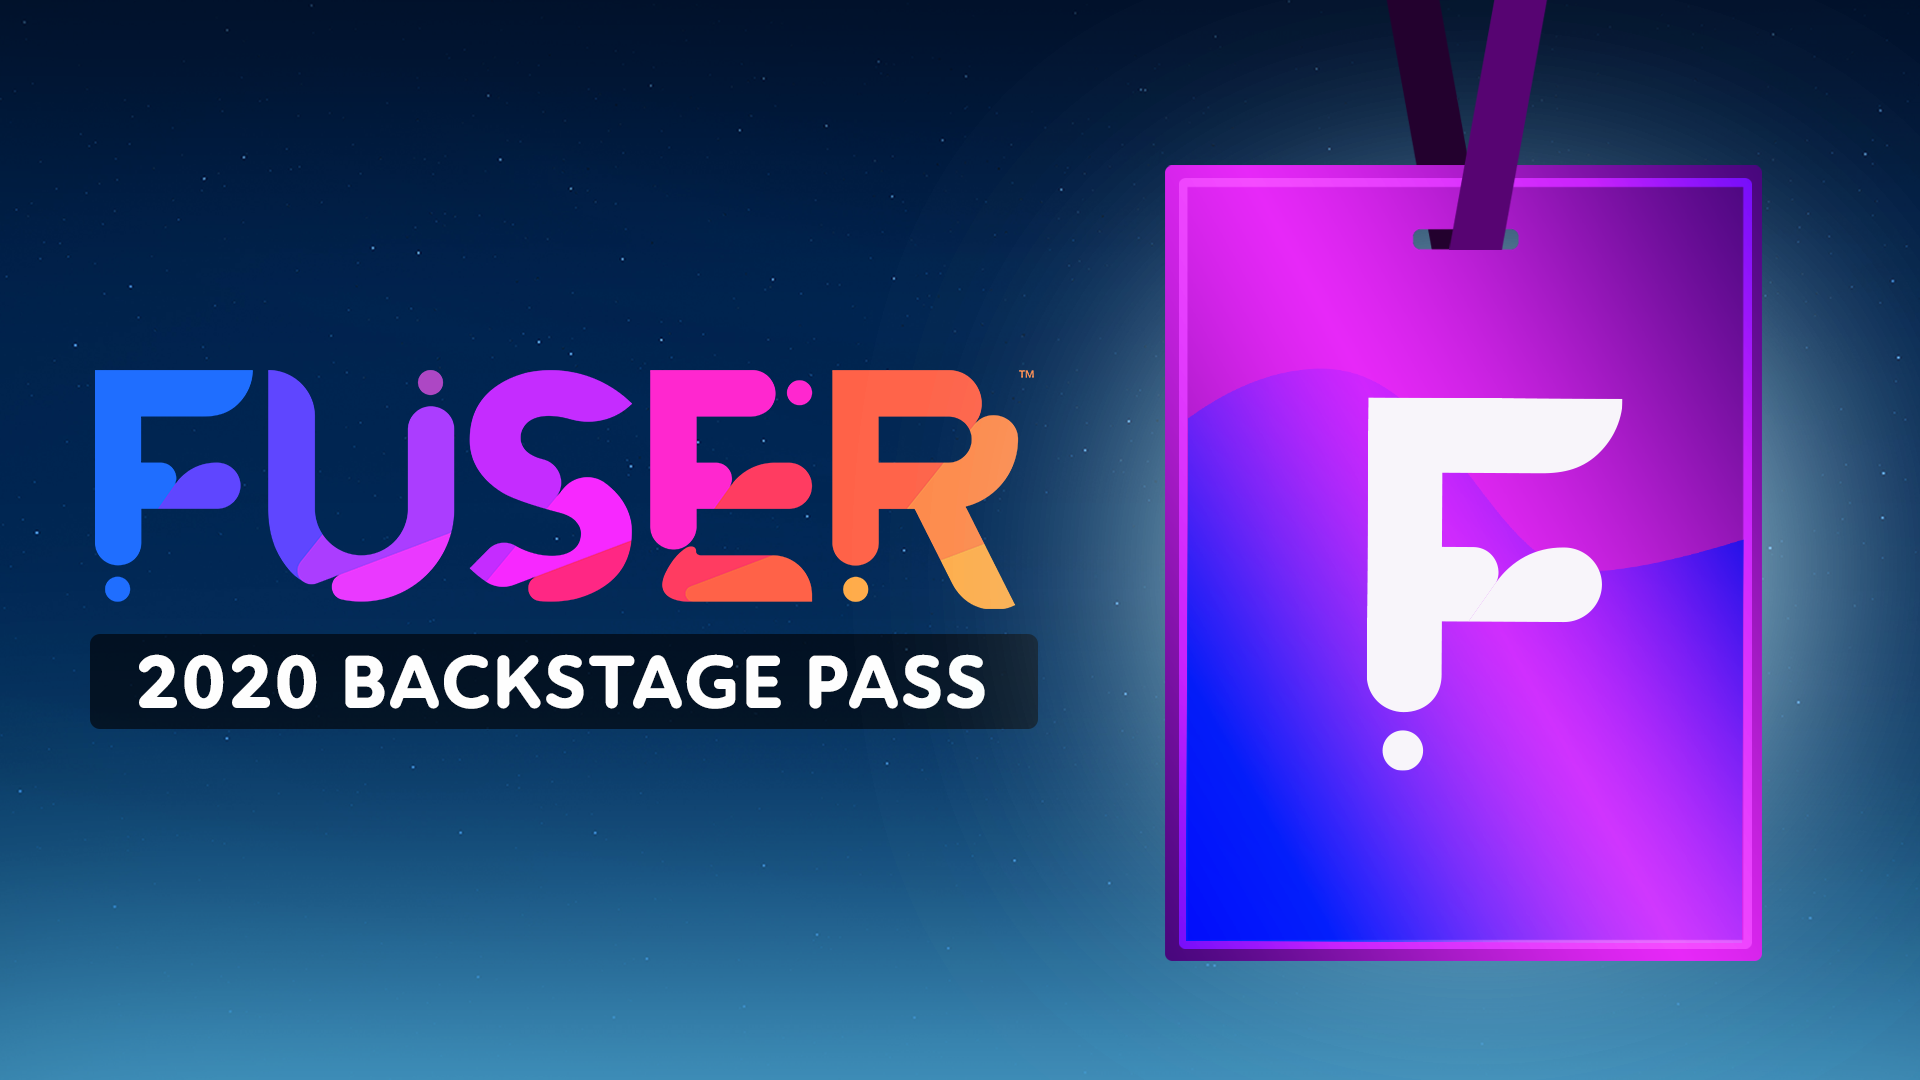 FUSER 2020 Backstage Pass and NEW Weekly DLC